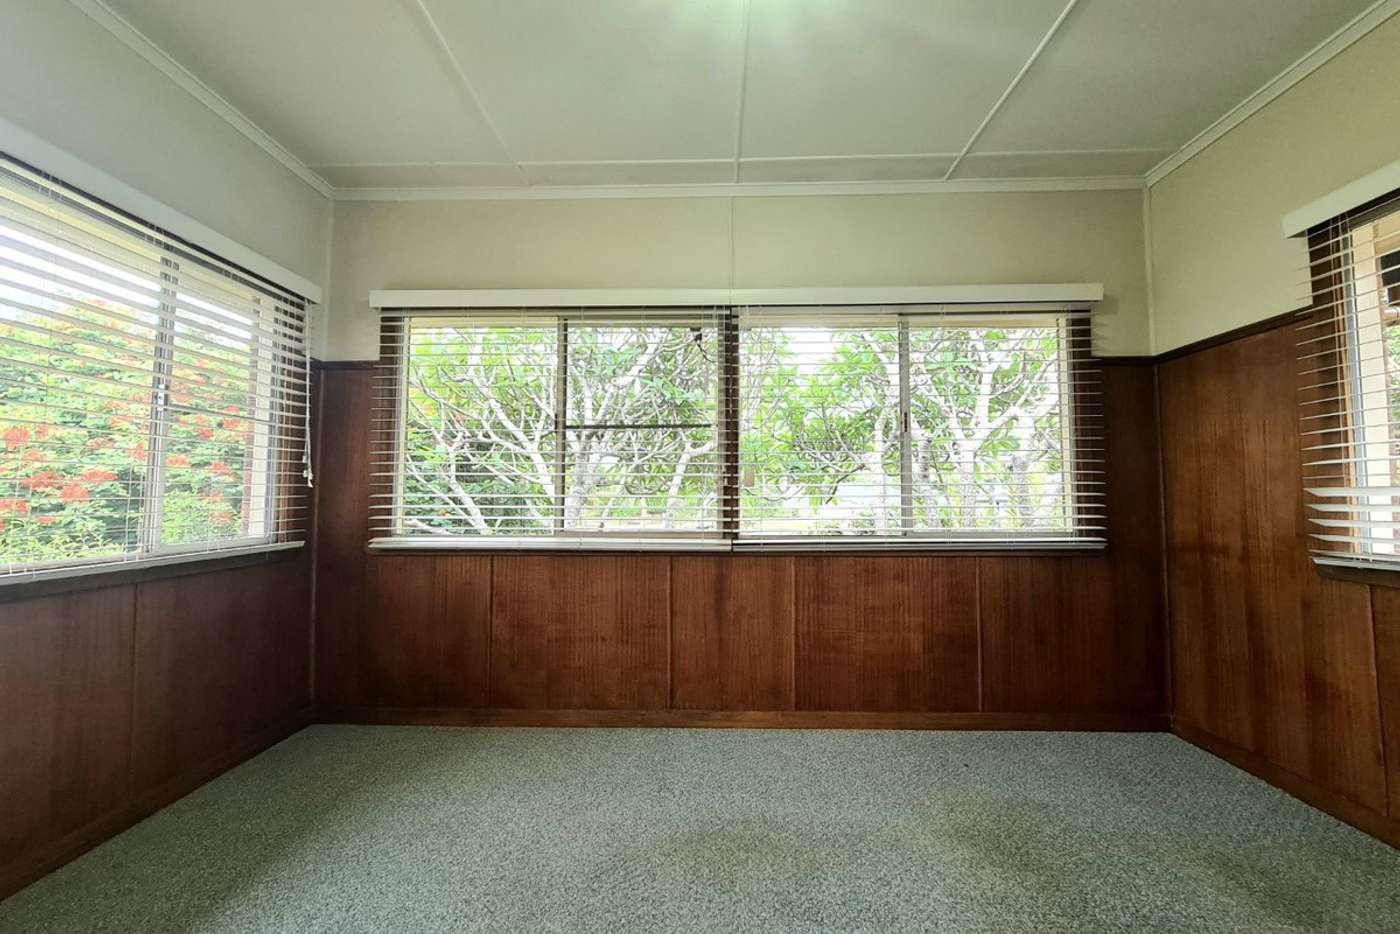 Seventh view of Homely house listing, 44 Perth Street, Rangeville QLD 4350